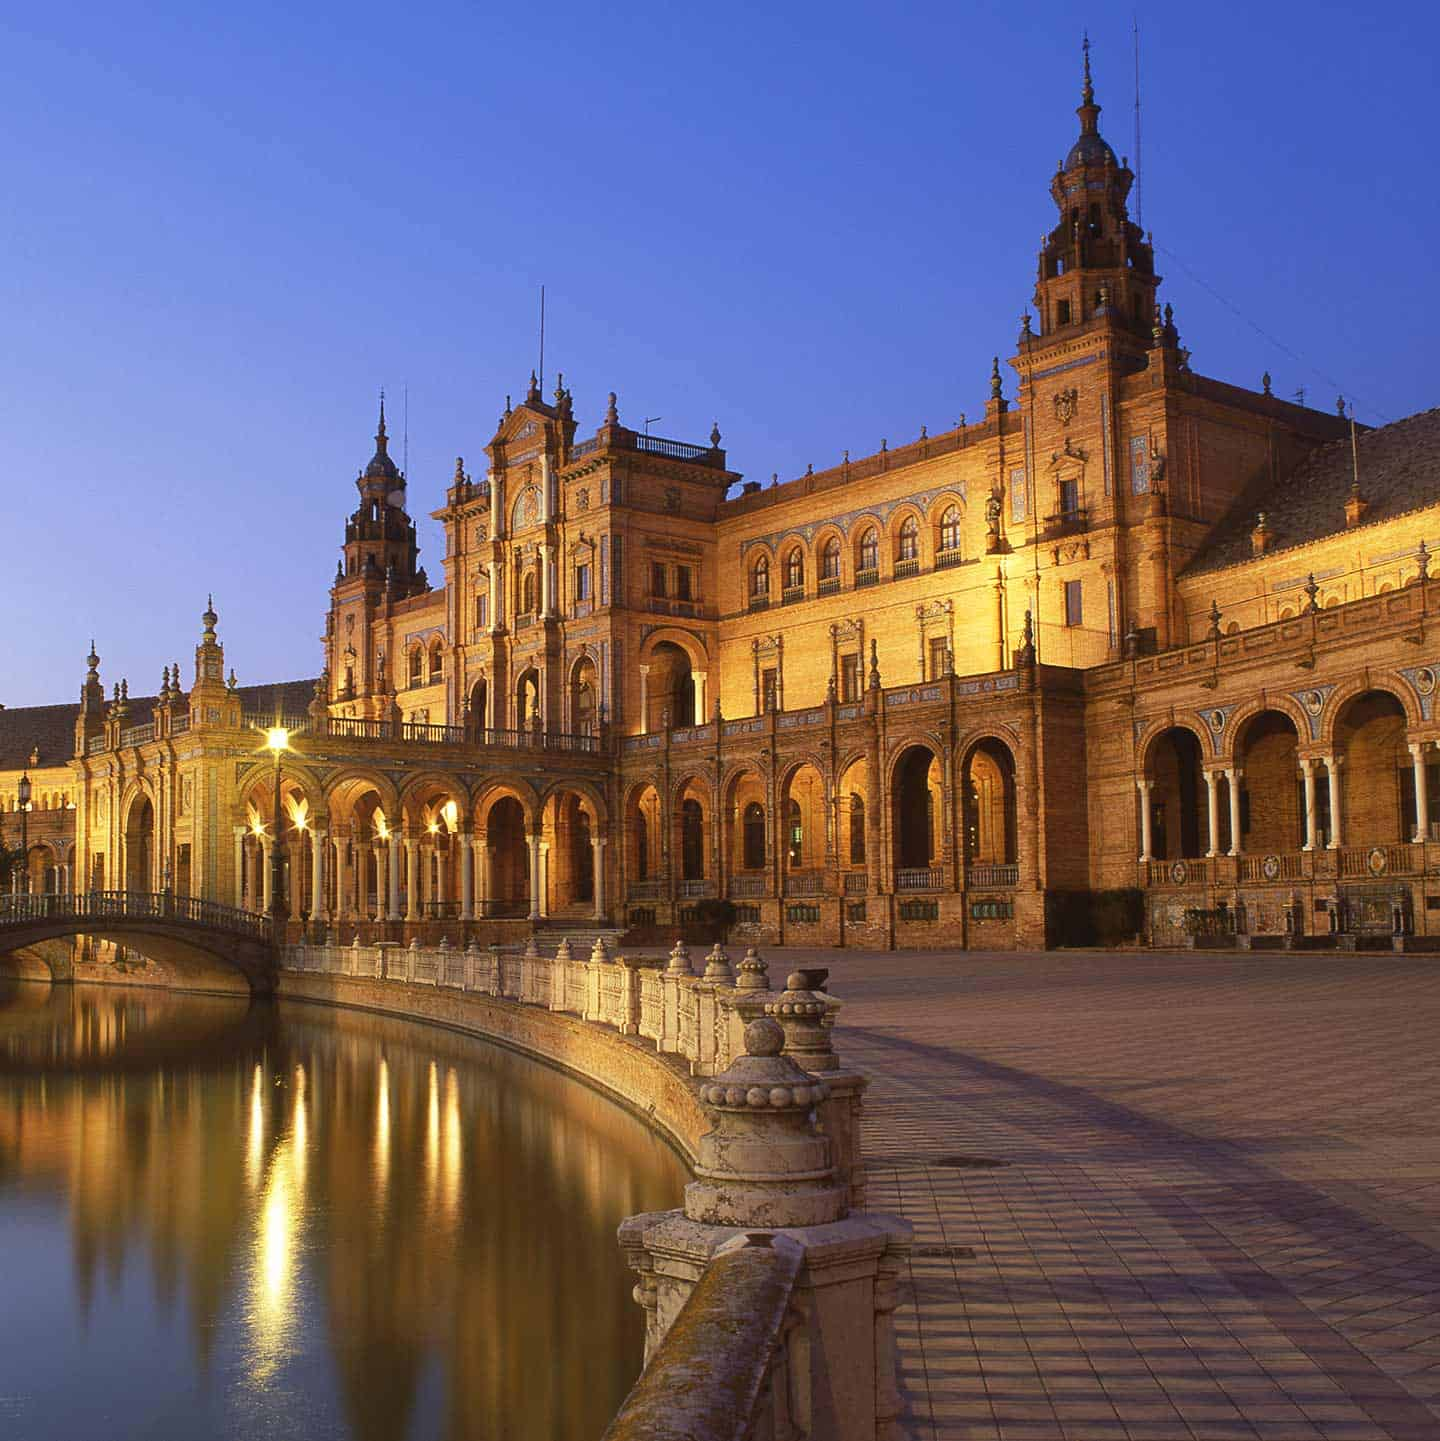 Image of the Plaza de Espana in Seville Spain